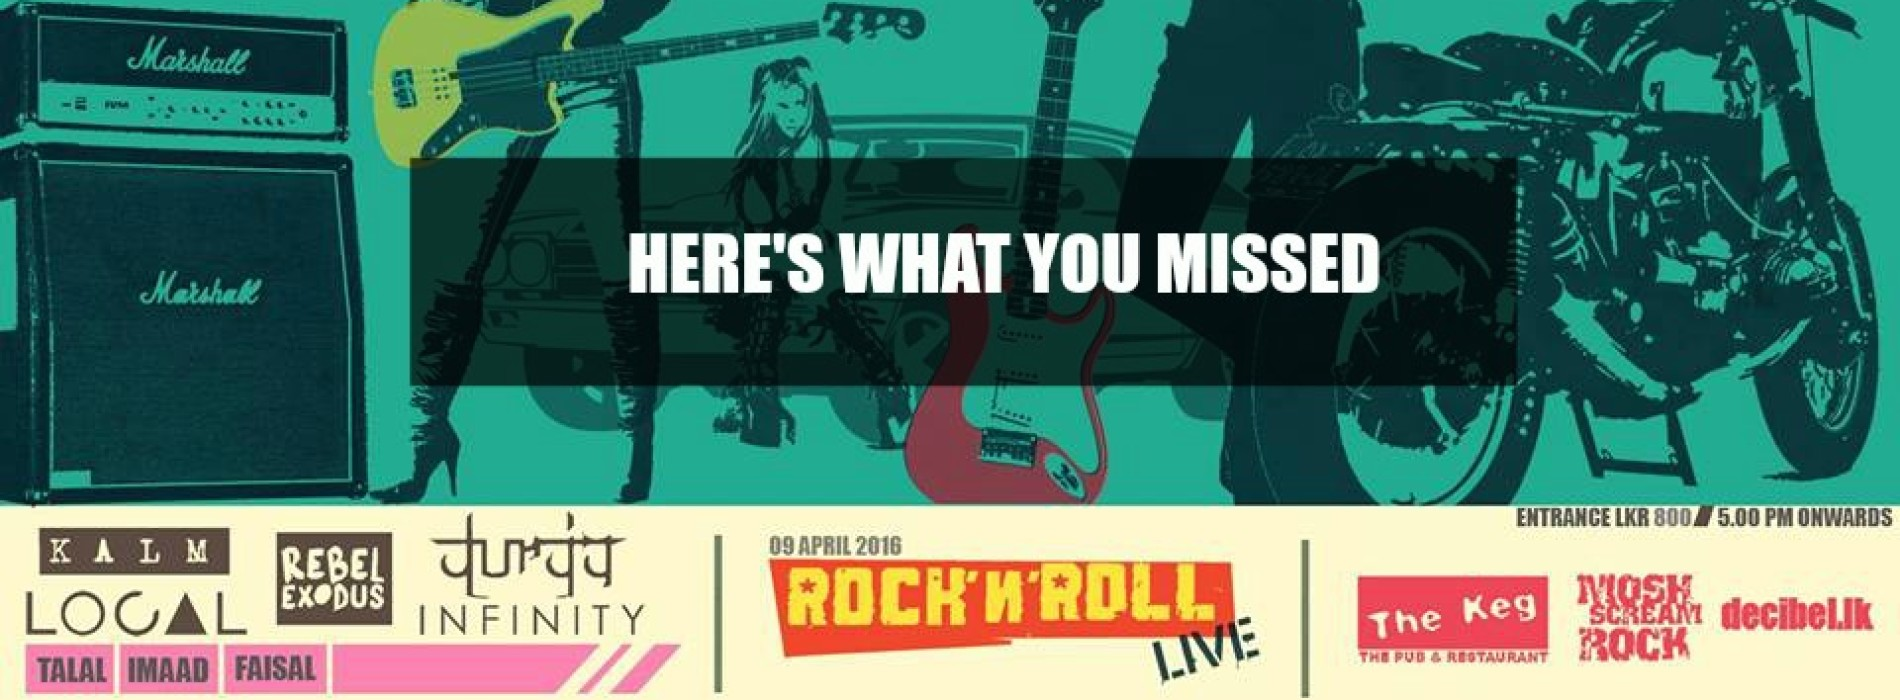 Missed Out On Rock N Roll? Here's What You Missed